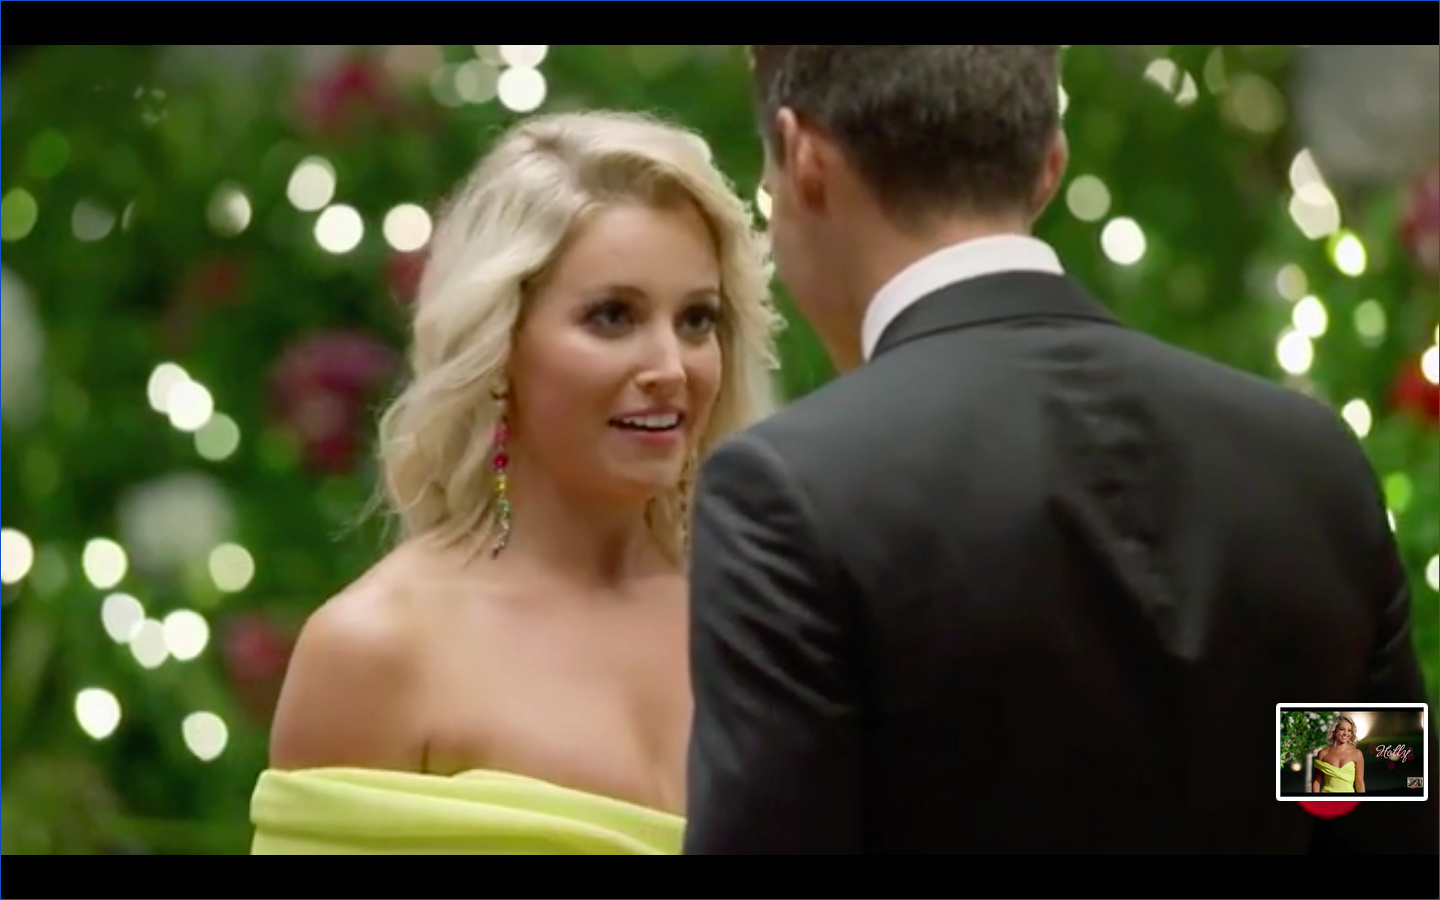 Bachelor Australia - Season 9 - Jimmy Nicholson - Holly Kingston - Paddle Boat Blonde 1-on-1 date - *Sleuthing Spoilers* - Page 2 Scree118